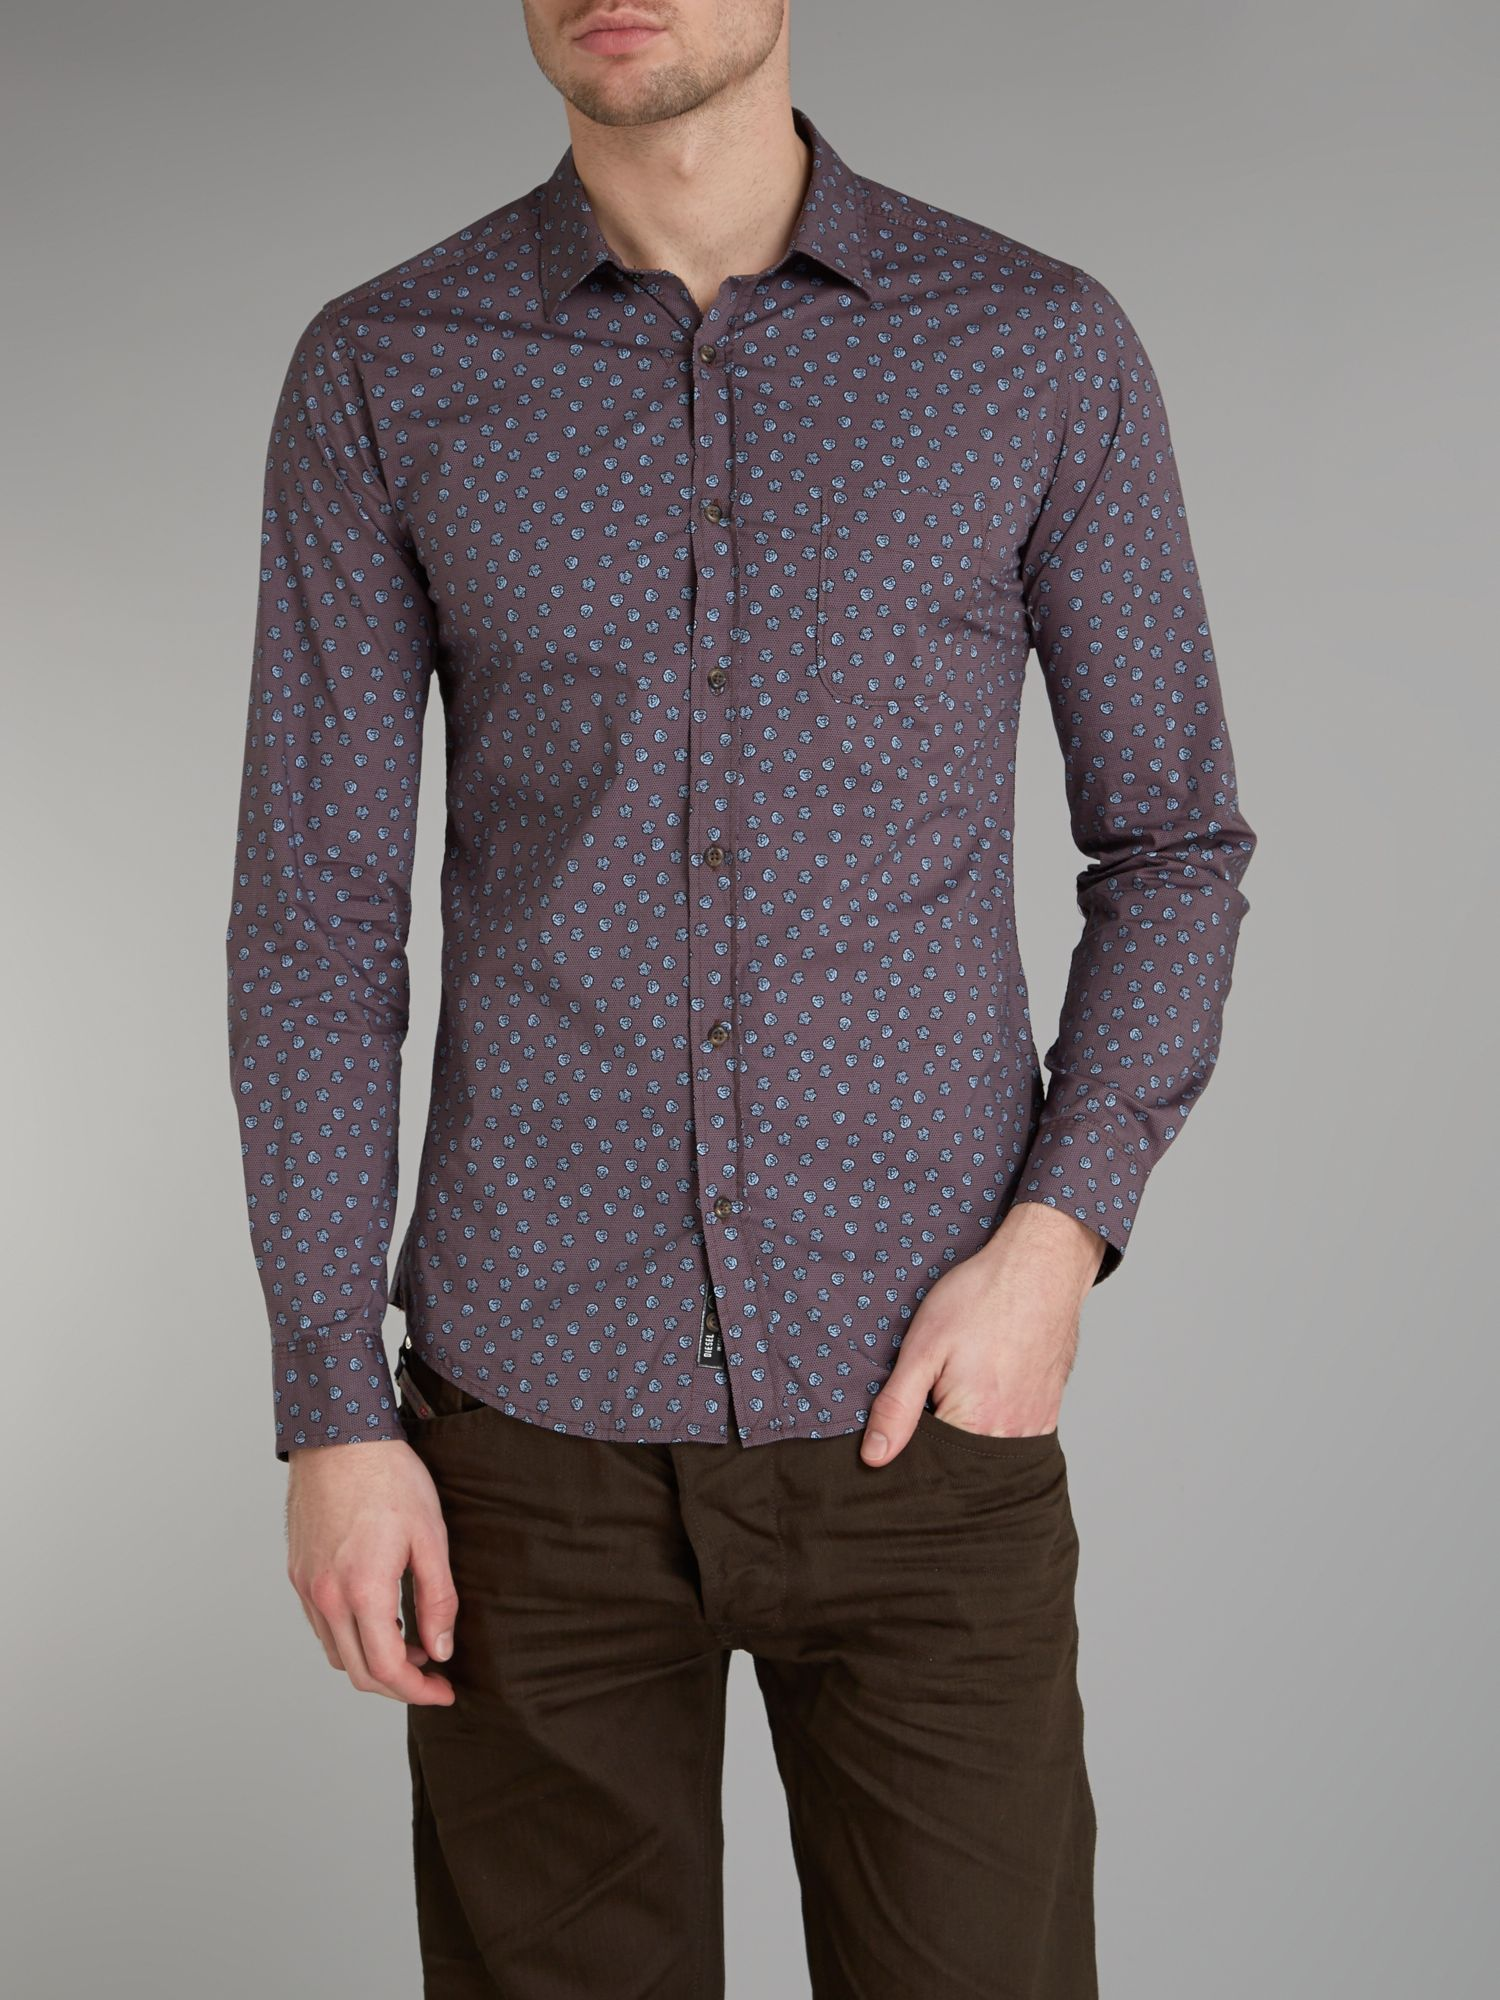 All over floral print shirt